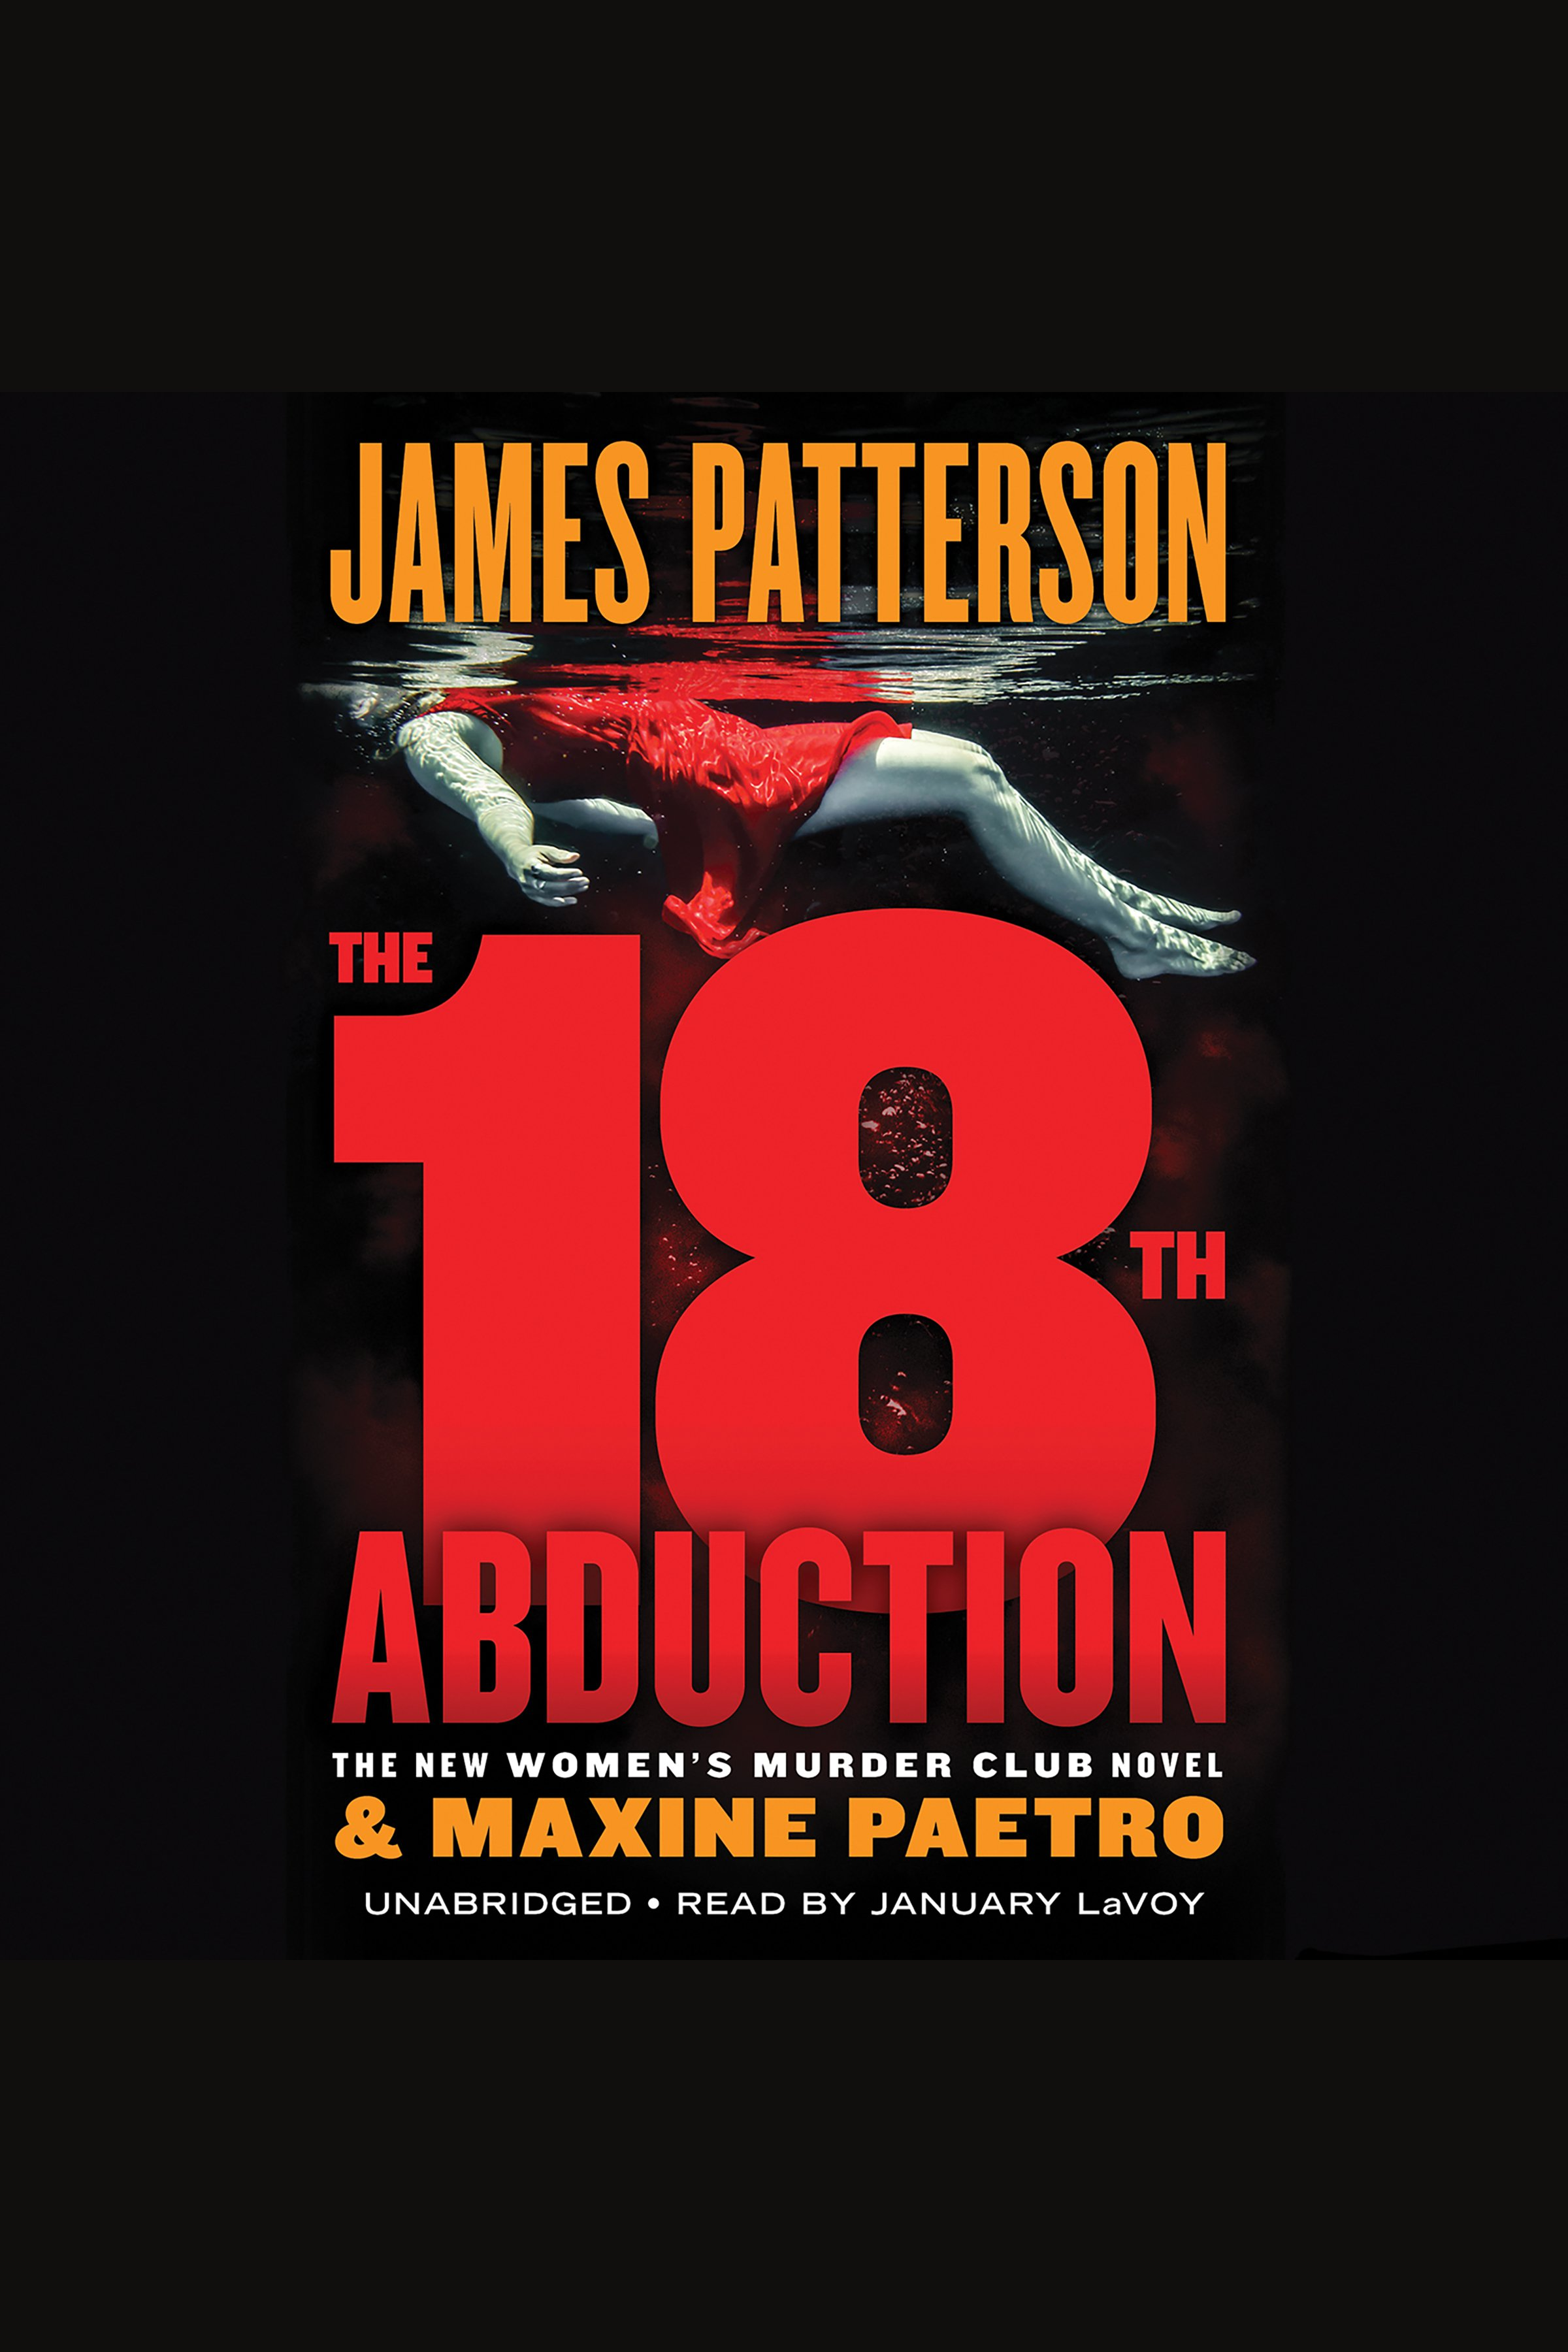 18th abduction cover image